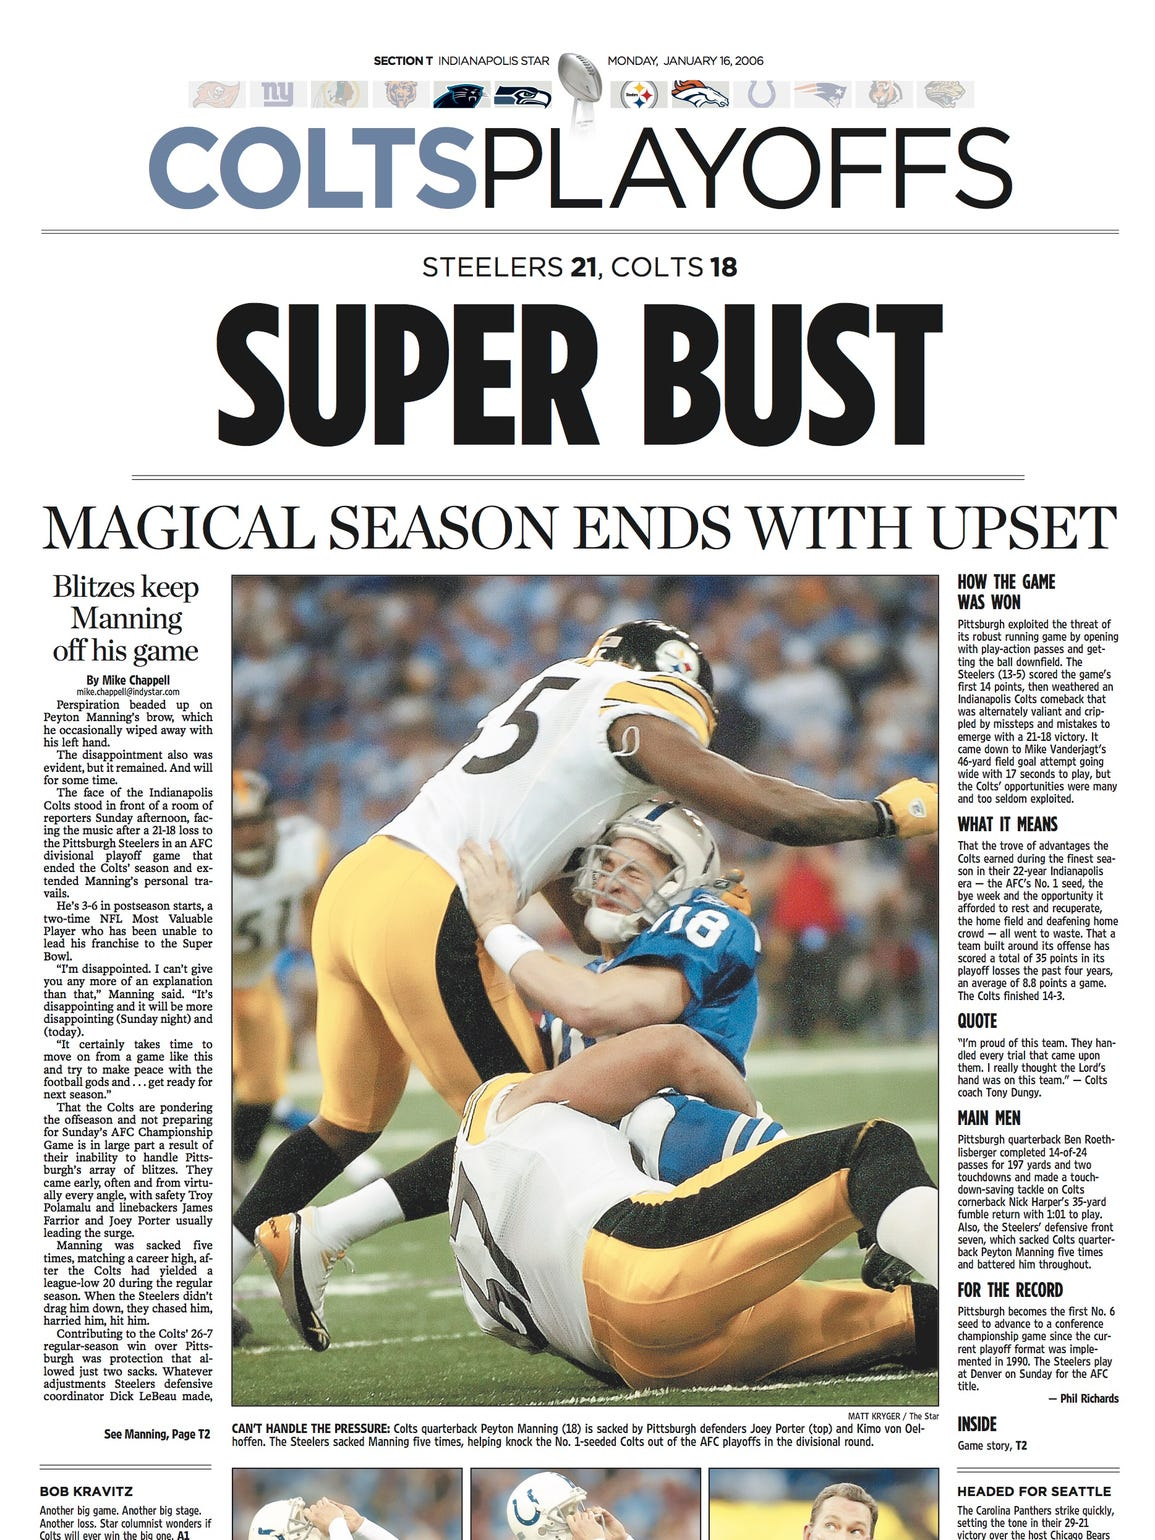 The Indianapolis Star's sports page the day after the